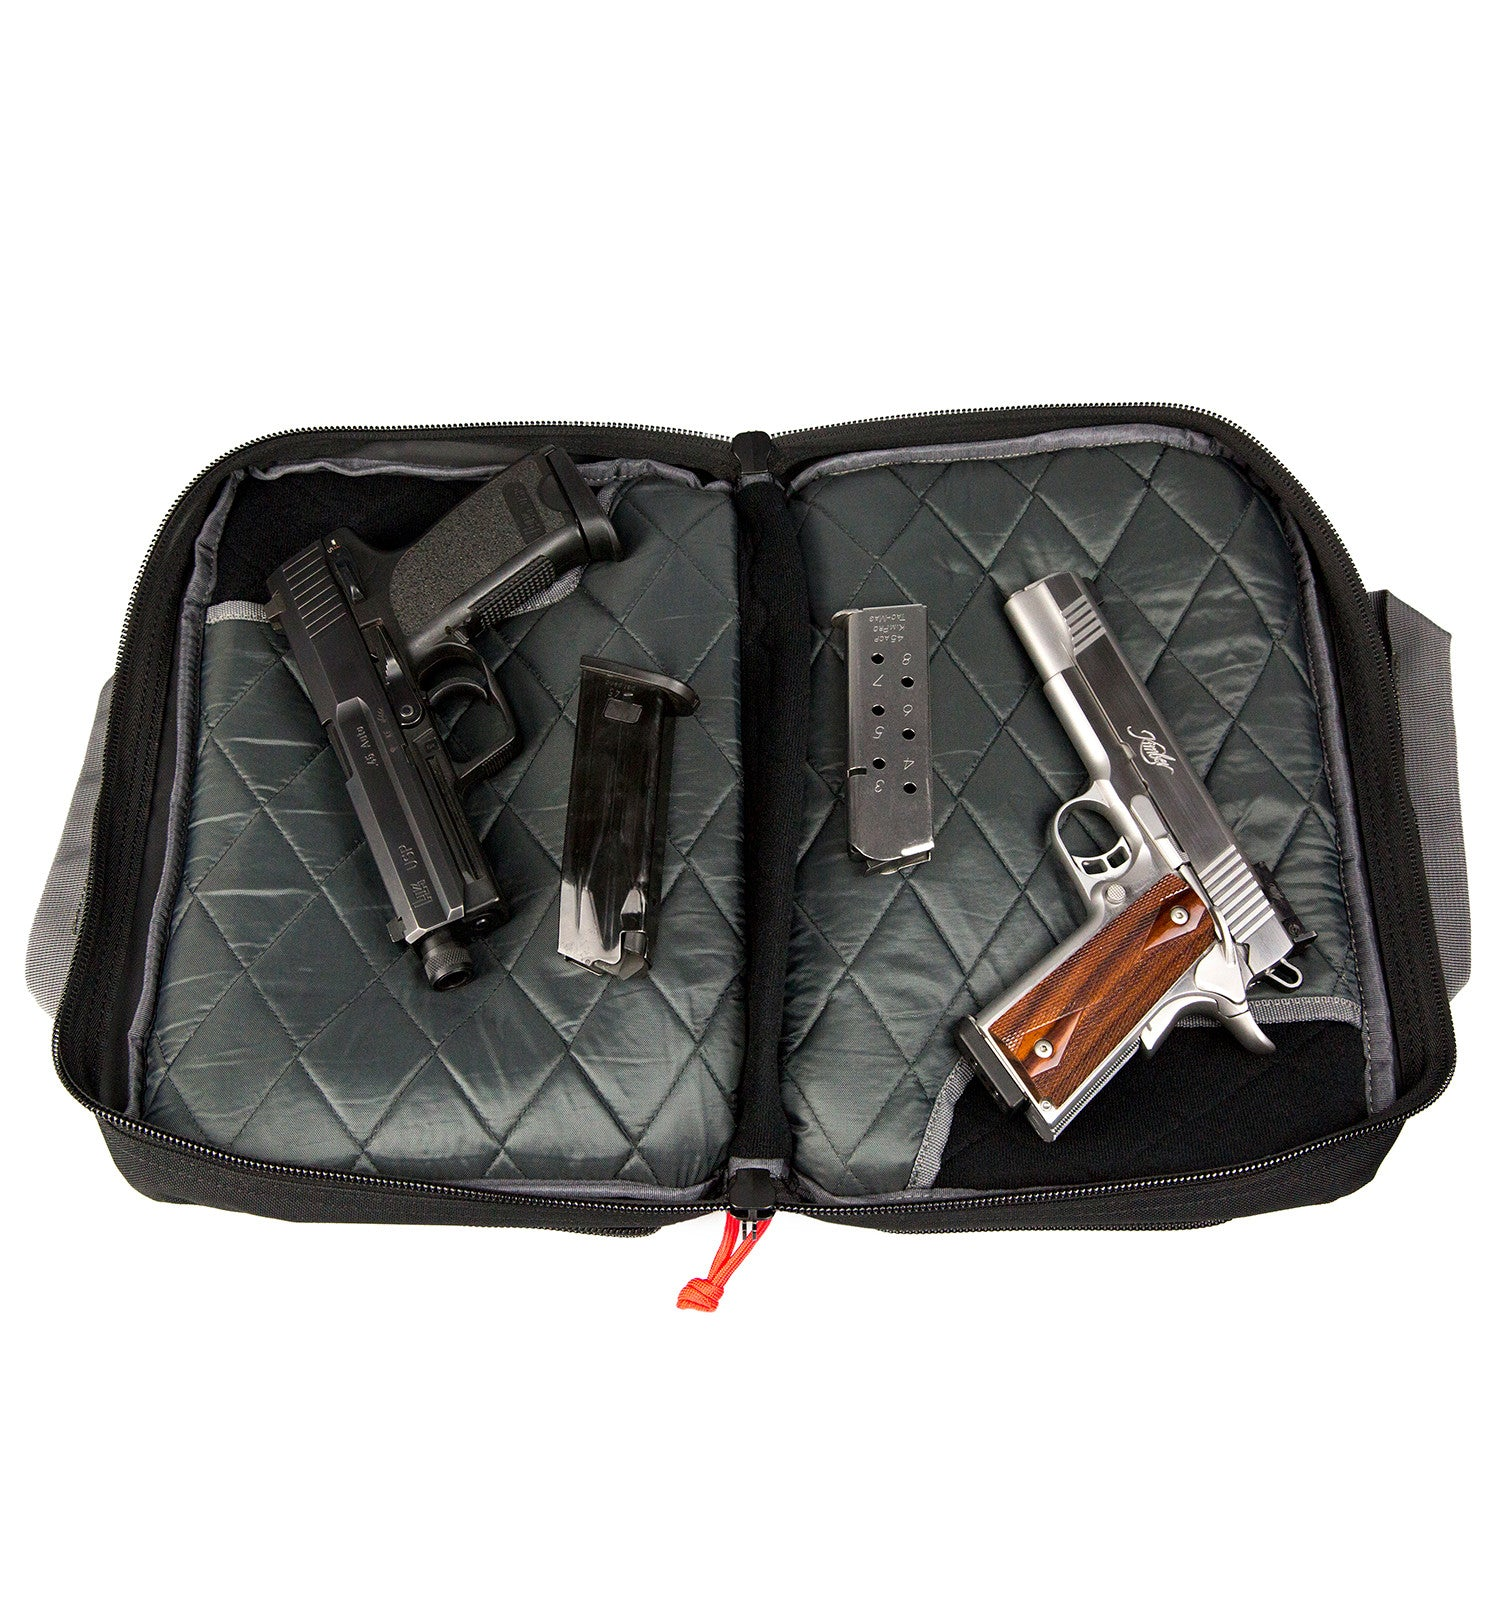 Quad Pistol Range Bag, Black